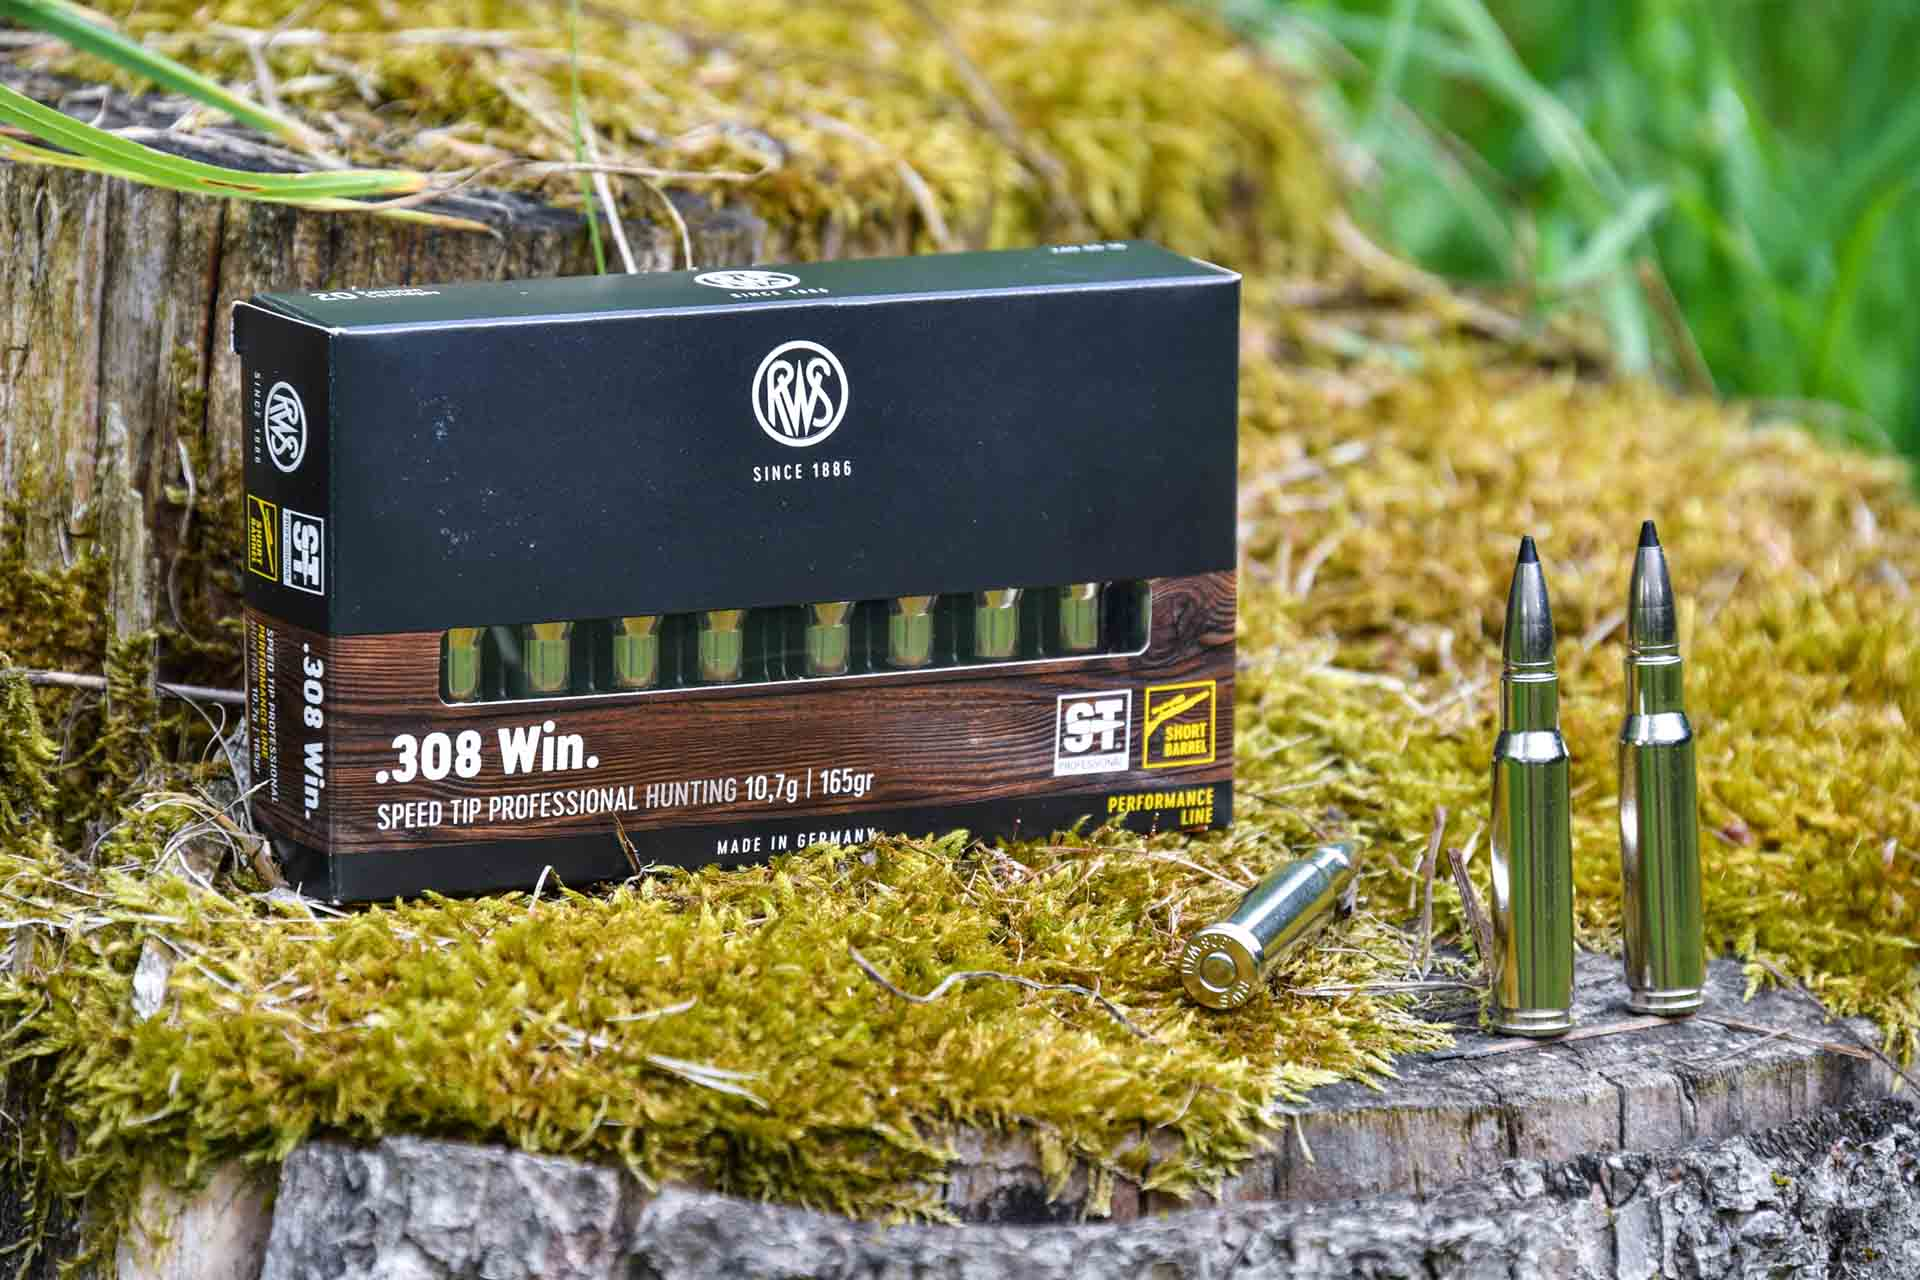 RWS Short Rifle load with the 10.7g (165gr) Speed Tip Pro bullet.